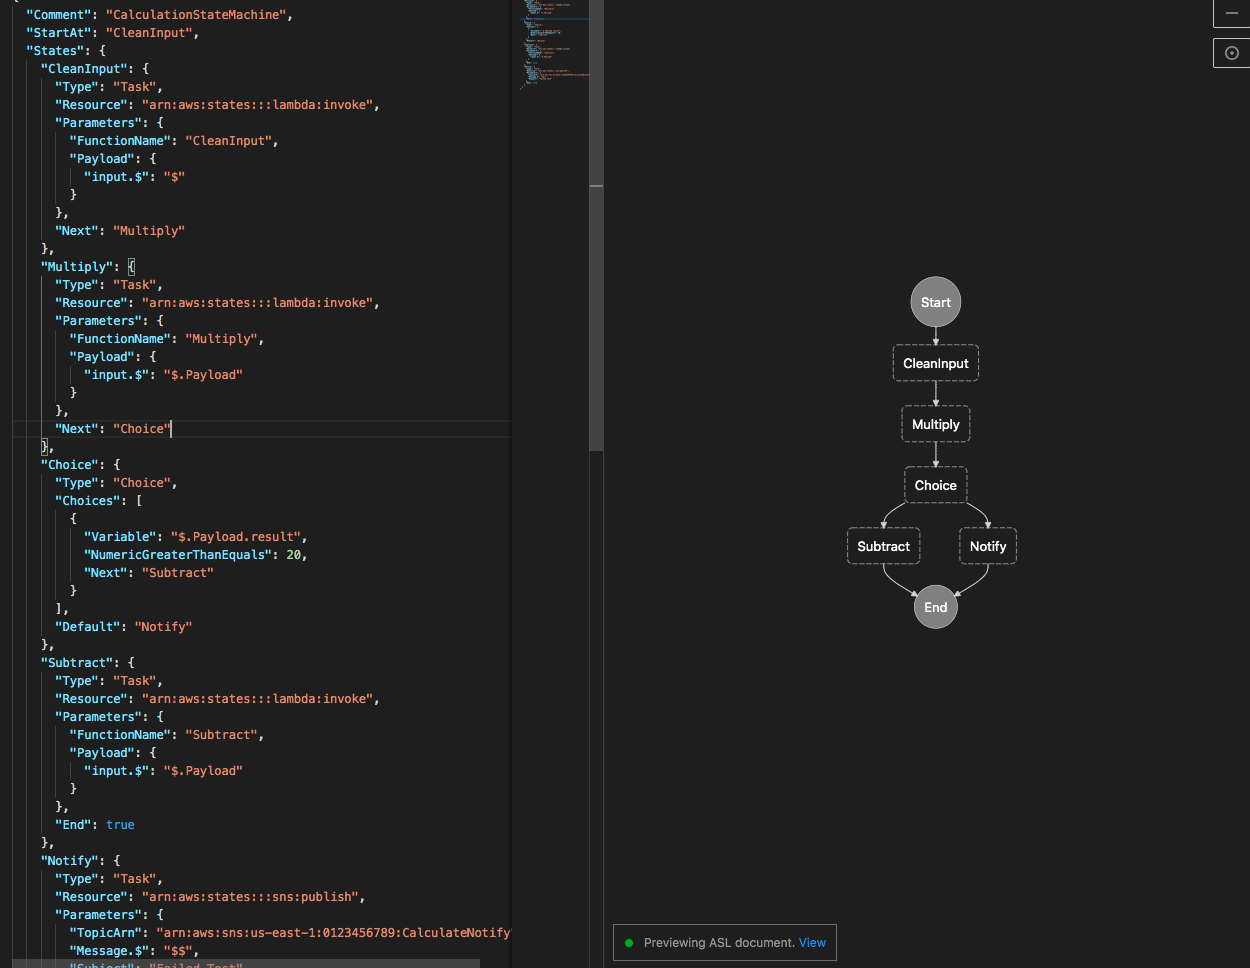 AWS StateMachine Visualization in VSCode